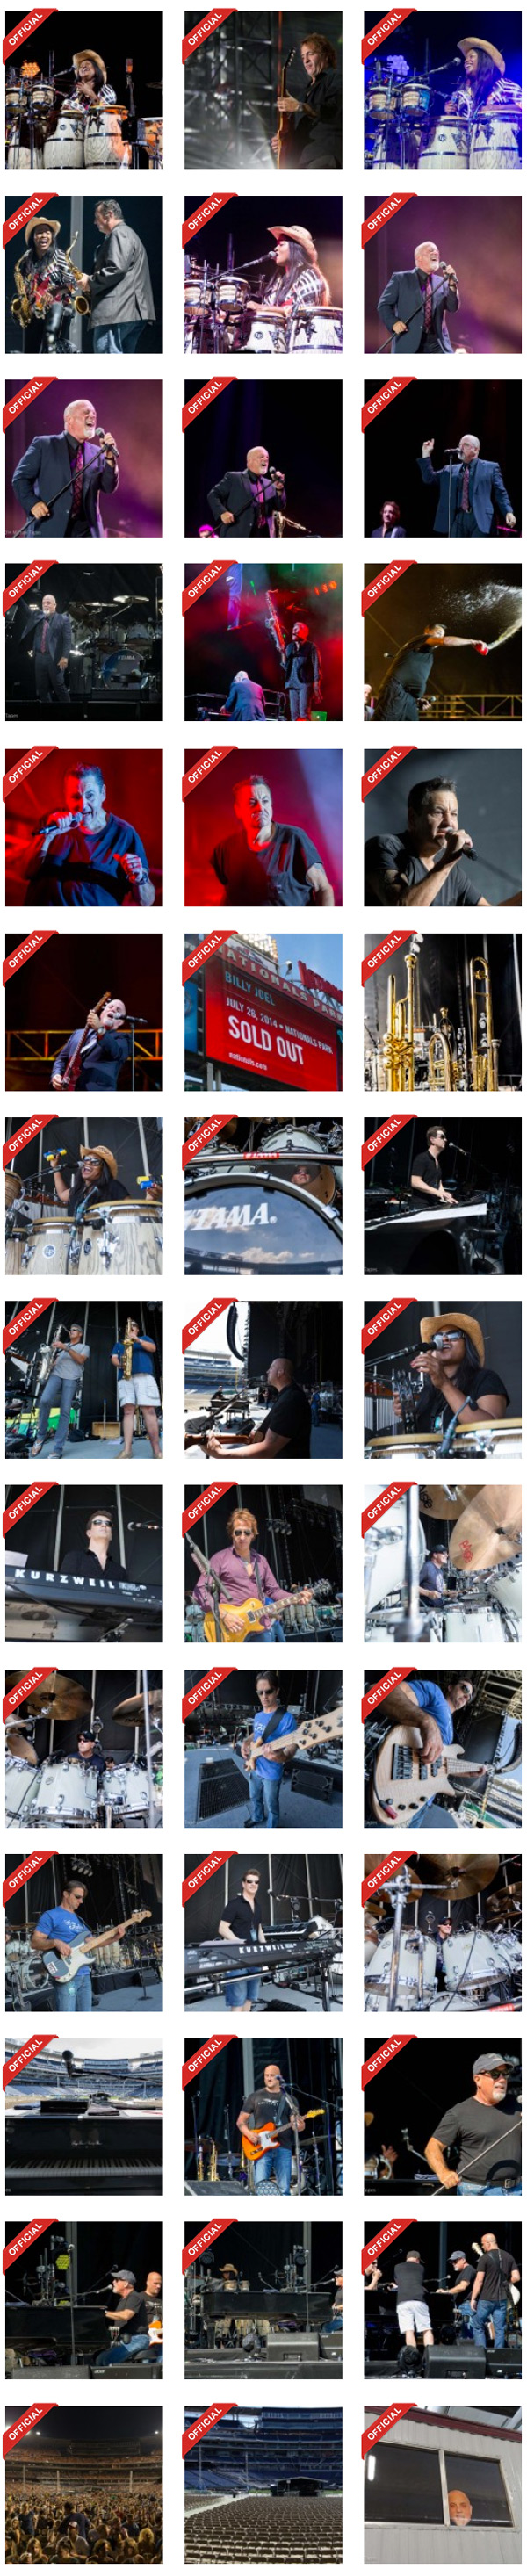 Billy Joel concert photos at Nationals Park in Washington, D.C., on July 26, 2014